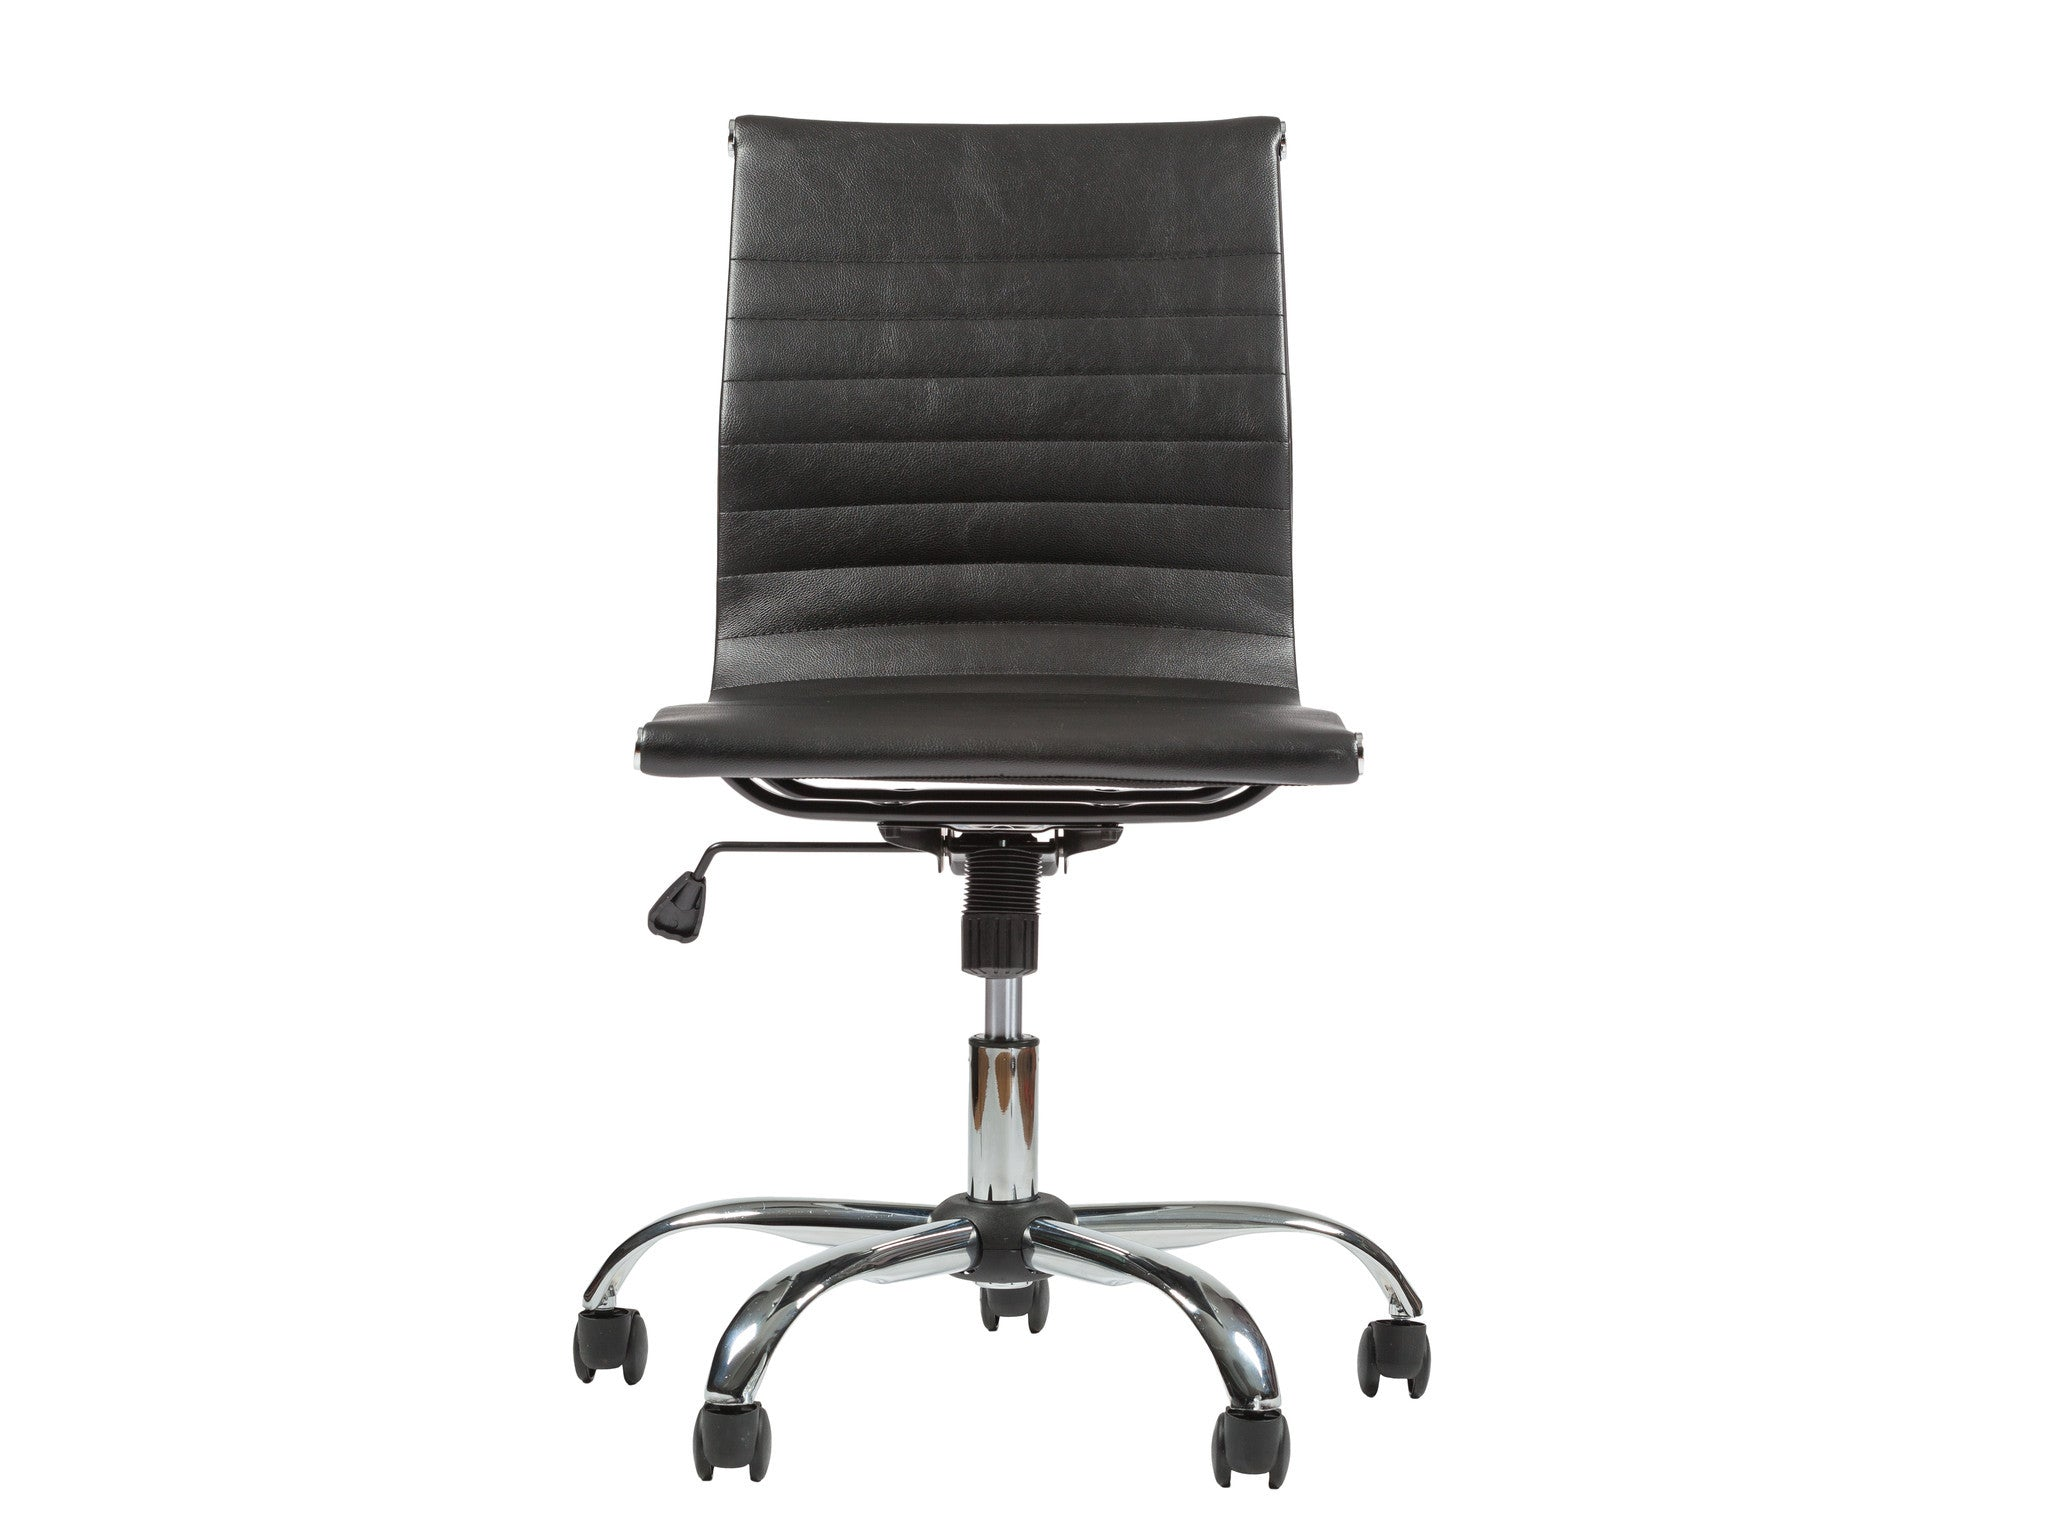 group ca office chair upholstered low df education products reg high furniture global graphic